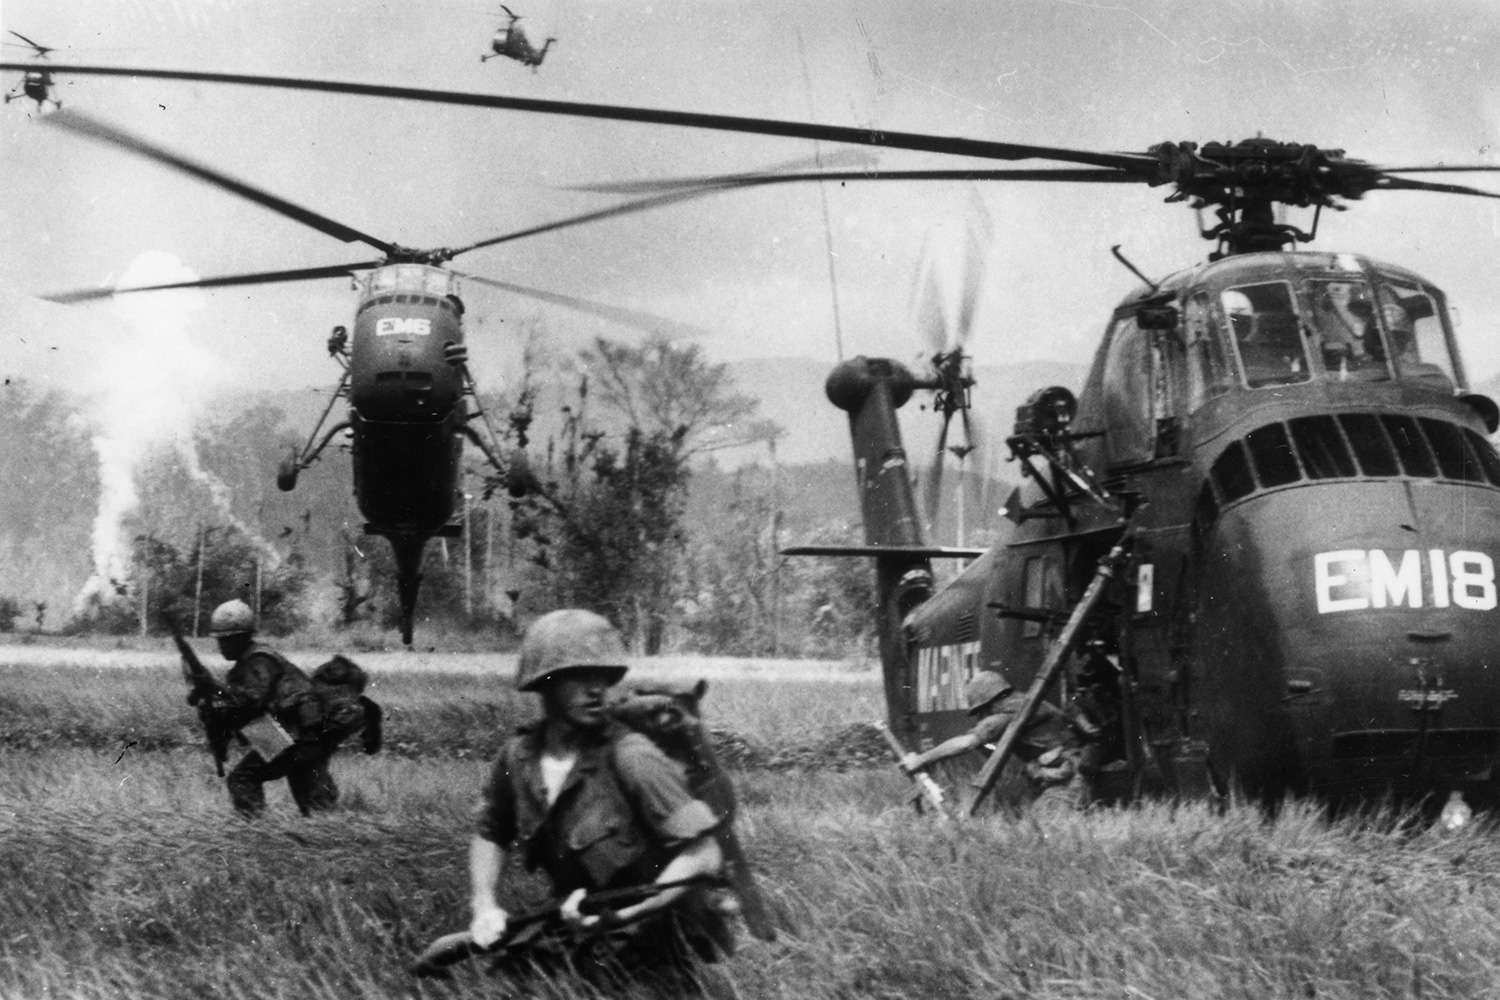 Helicopters had a major role in the Vietnam War.